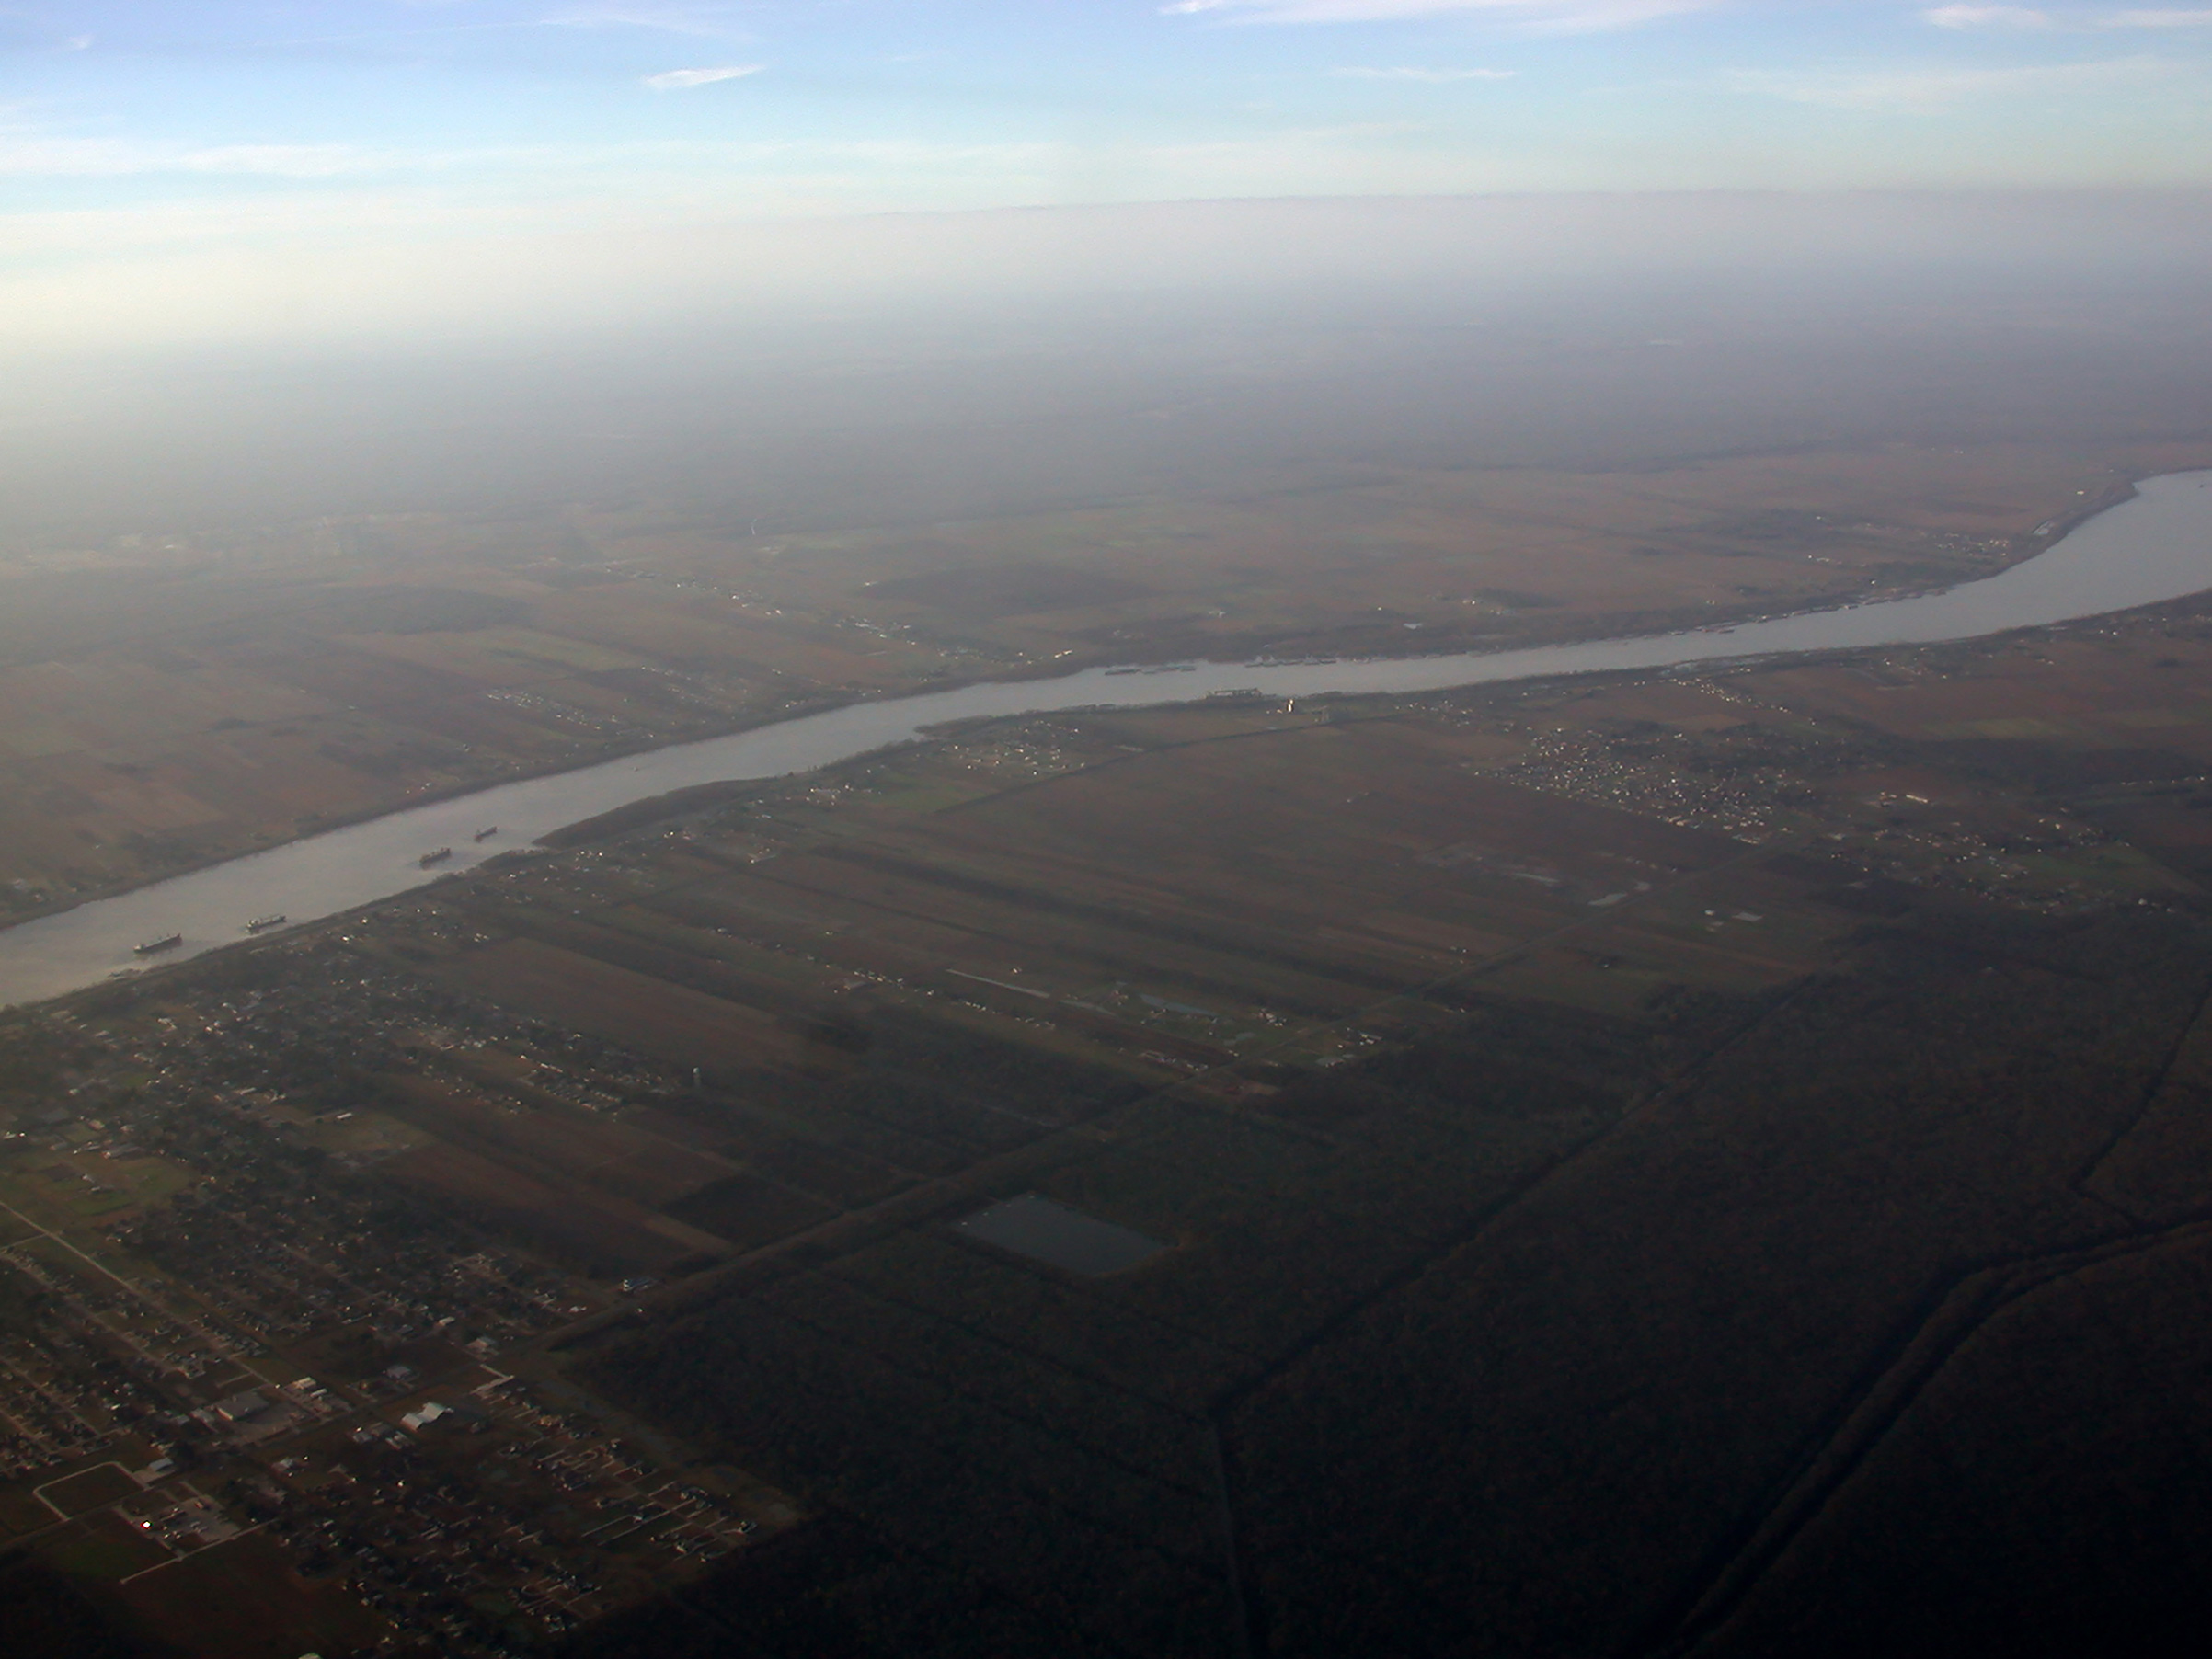 The Mississippi River, seen here north of New Orleans, feeds into the Port of South Louisiana, the largest port in the U.S. Port workers here have higher average starting salaries than workers in the tourism sector